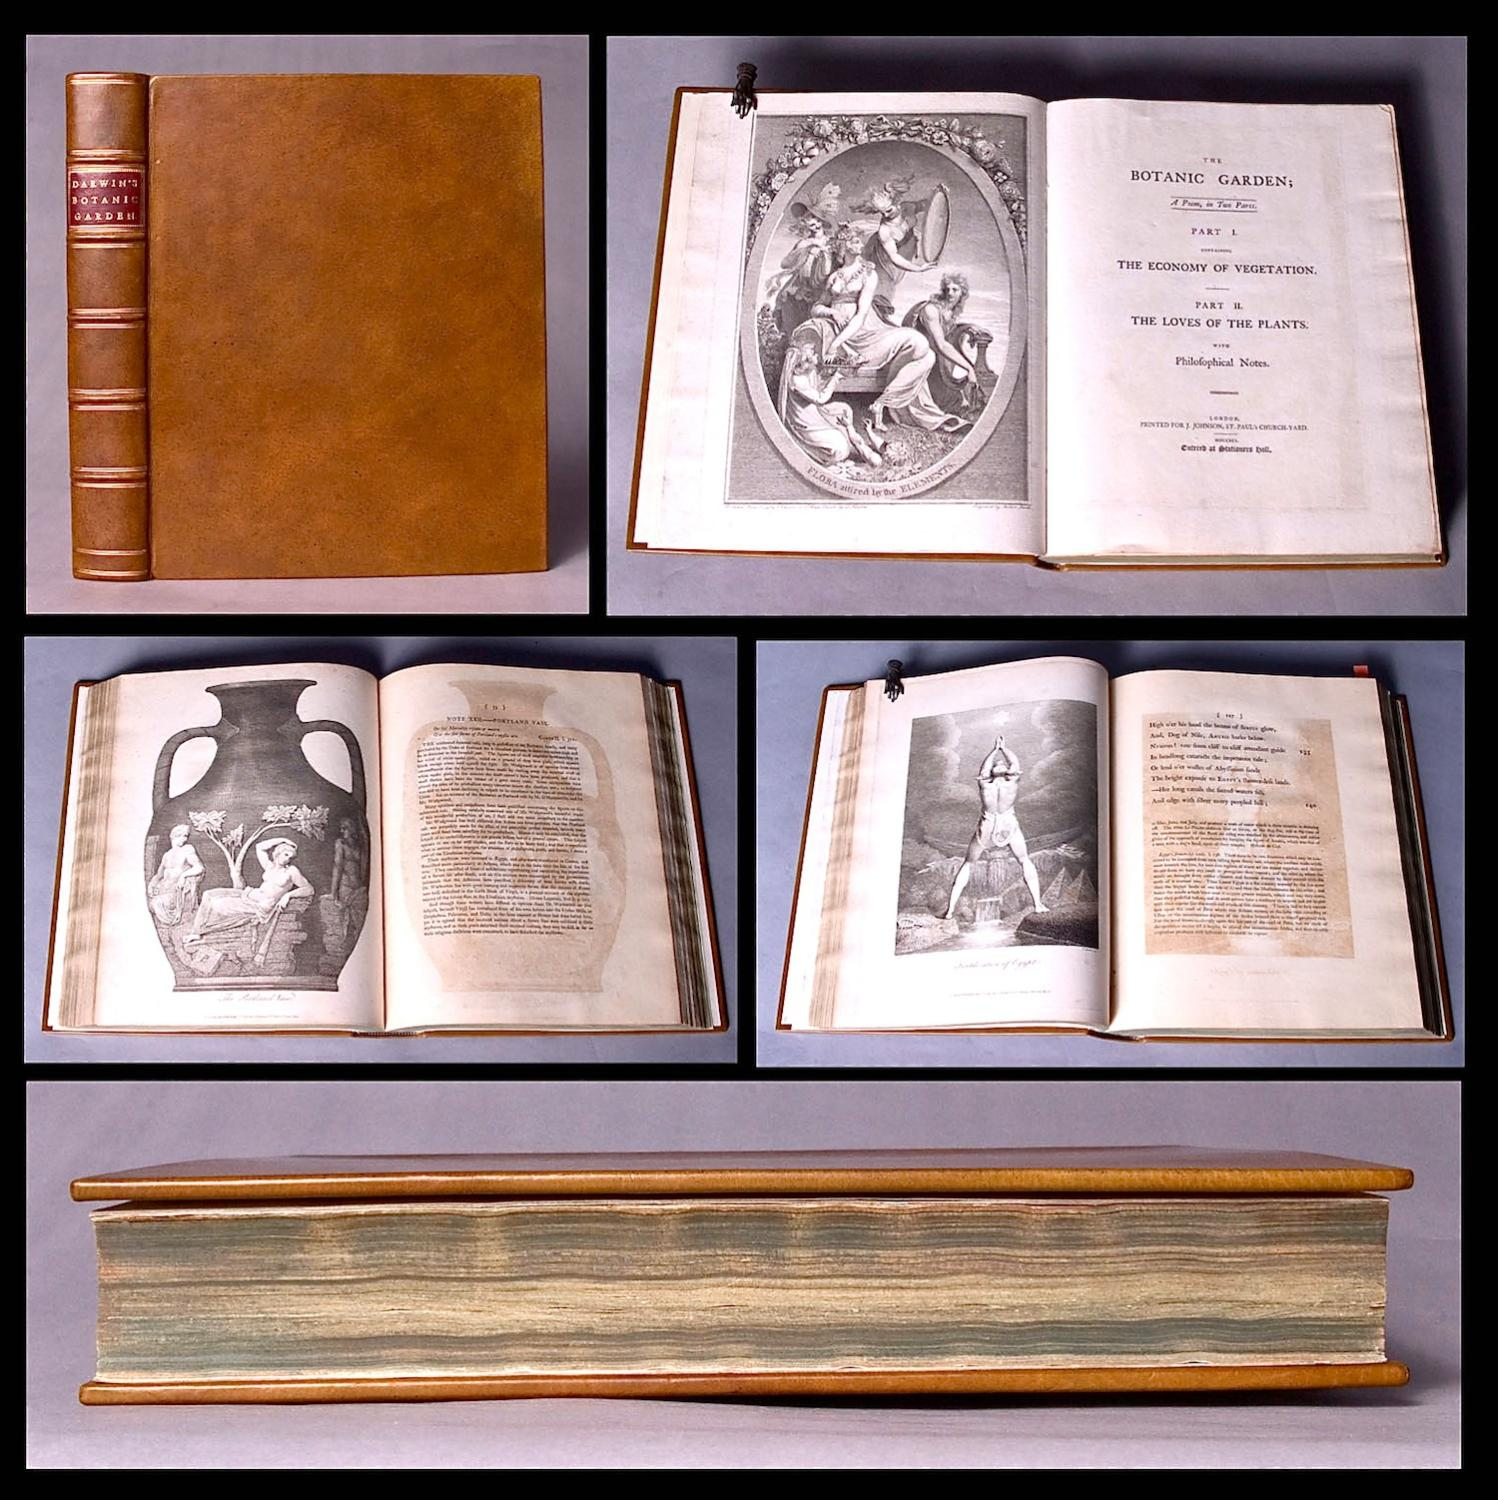 [William Blake] The botanic garden. A poem, in two parts. Part I. Containing the economy of ...